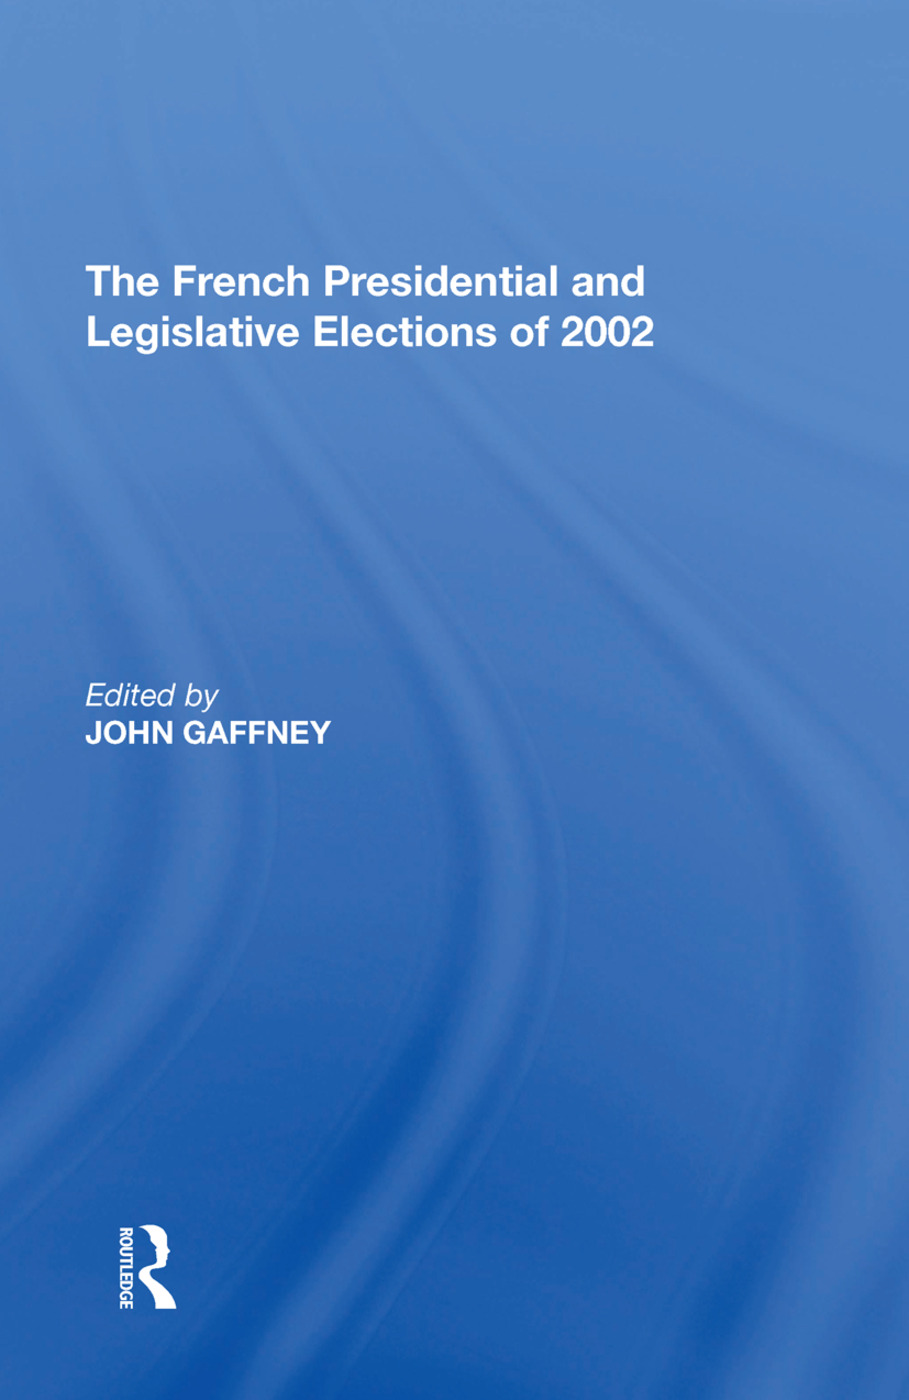 The French Presidential and Legislative Elections of 2002